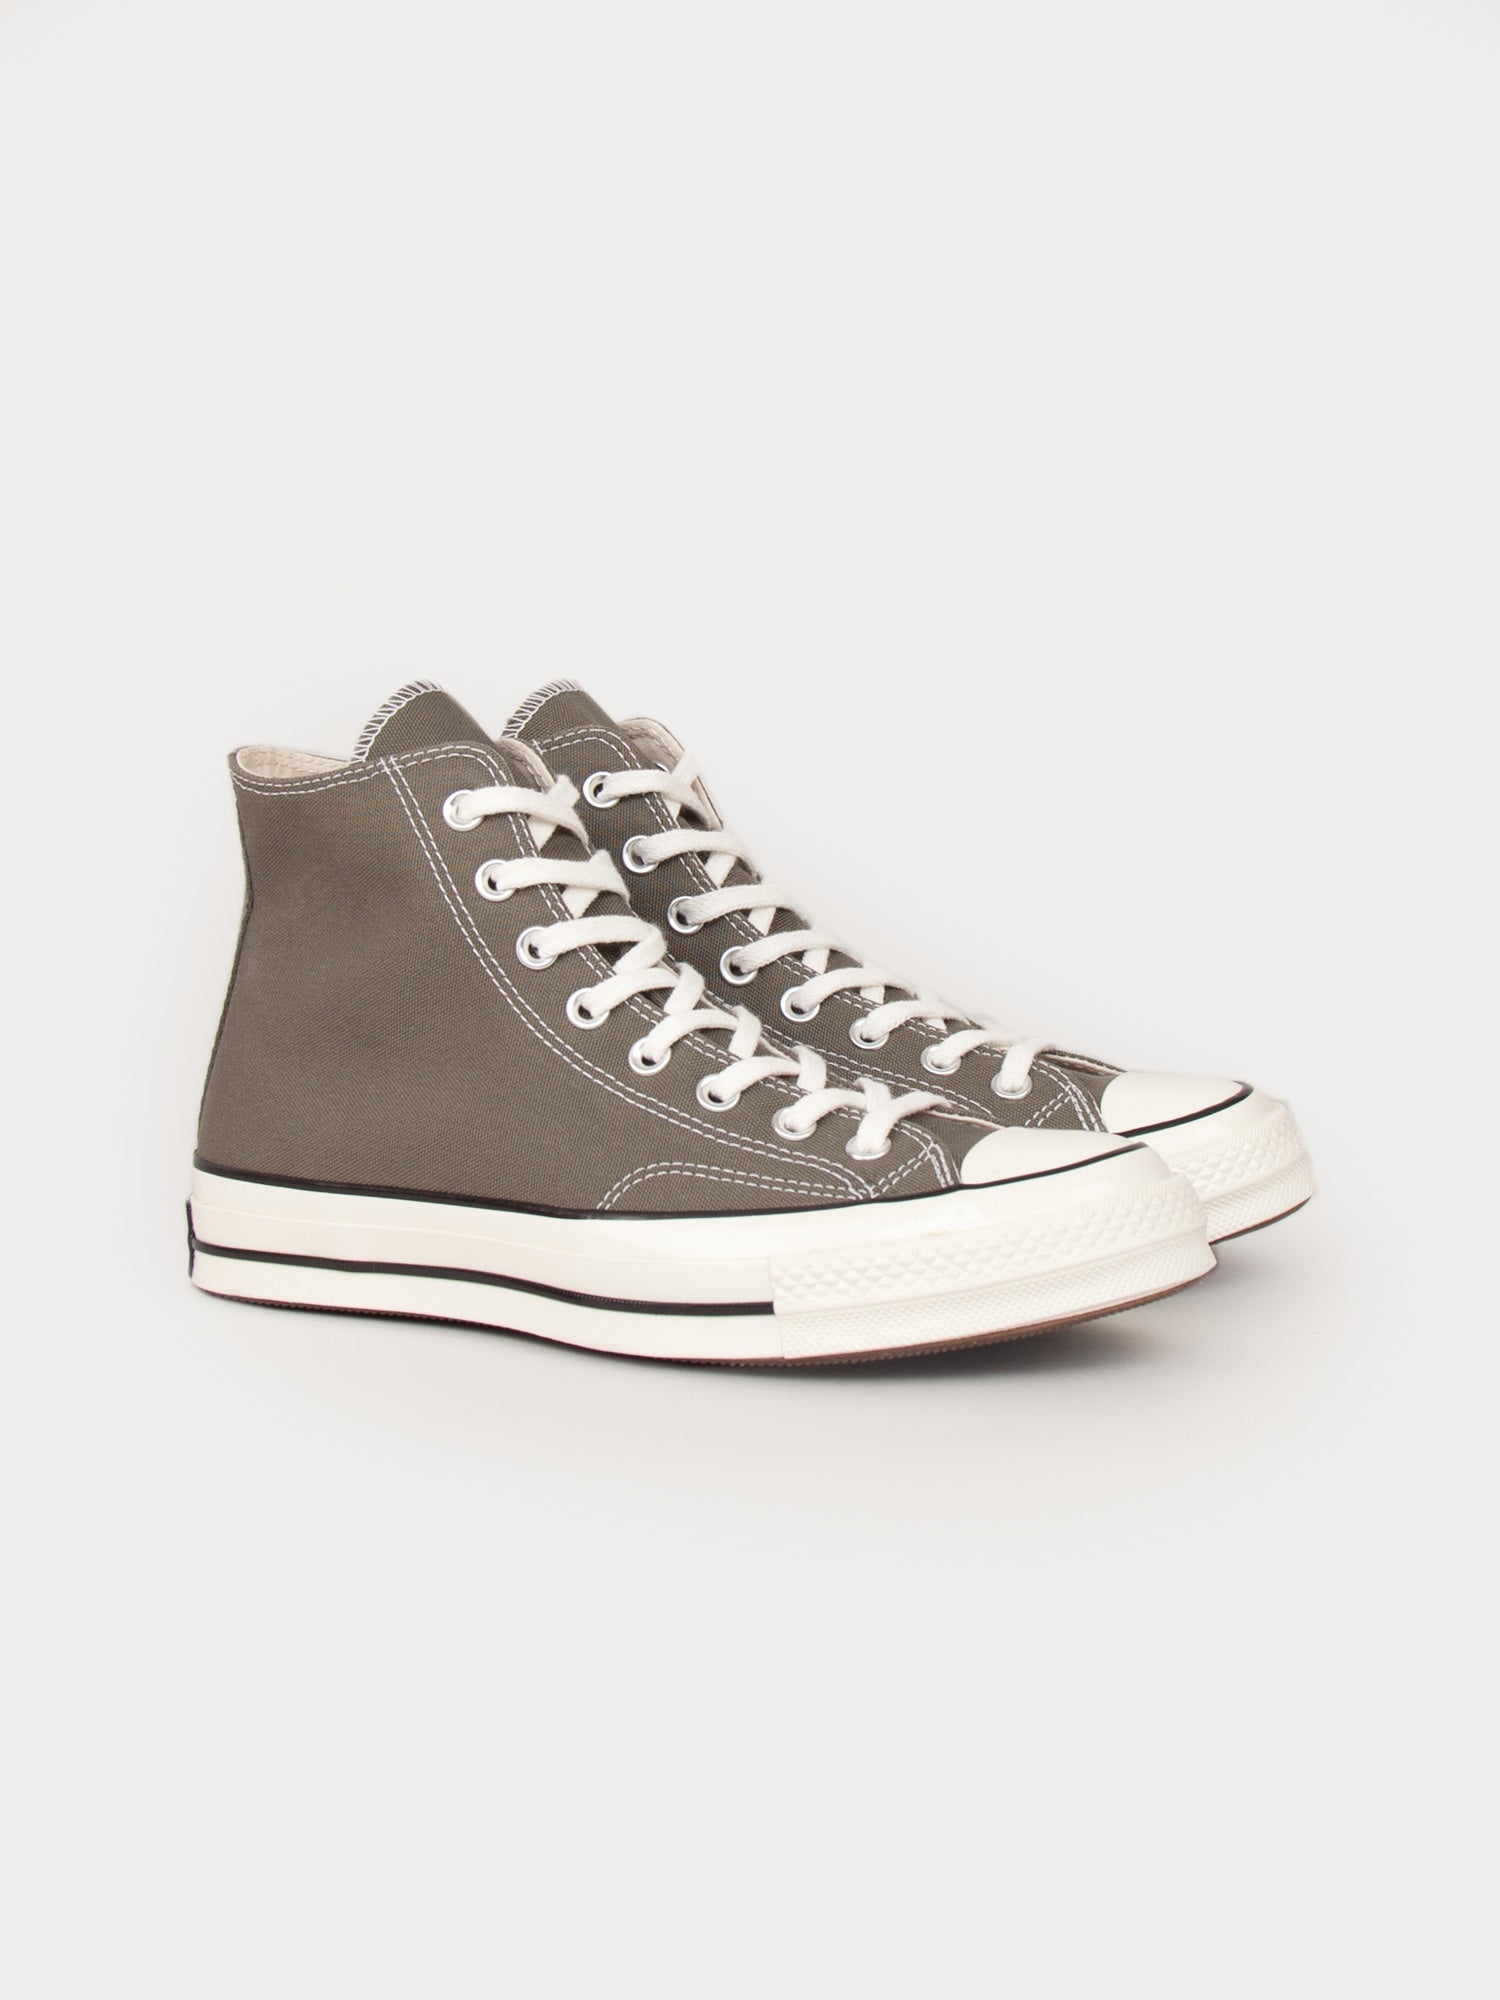 f92df7f3098 Converse-Chuck-Taylor-All-Star-70 -Hi- Field-Surplus -2.jpg v 1533122049